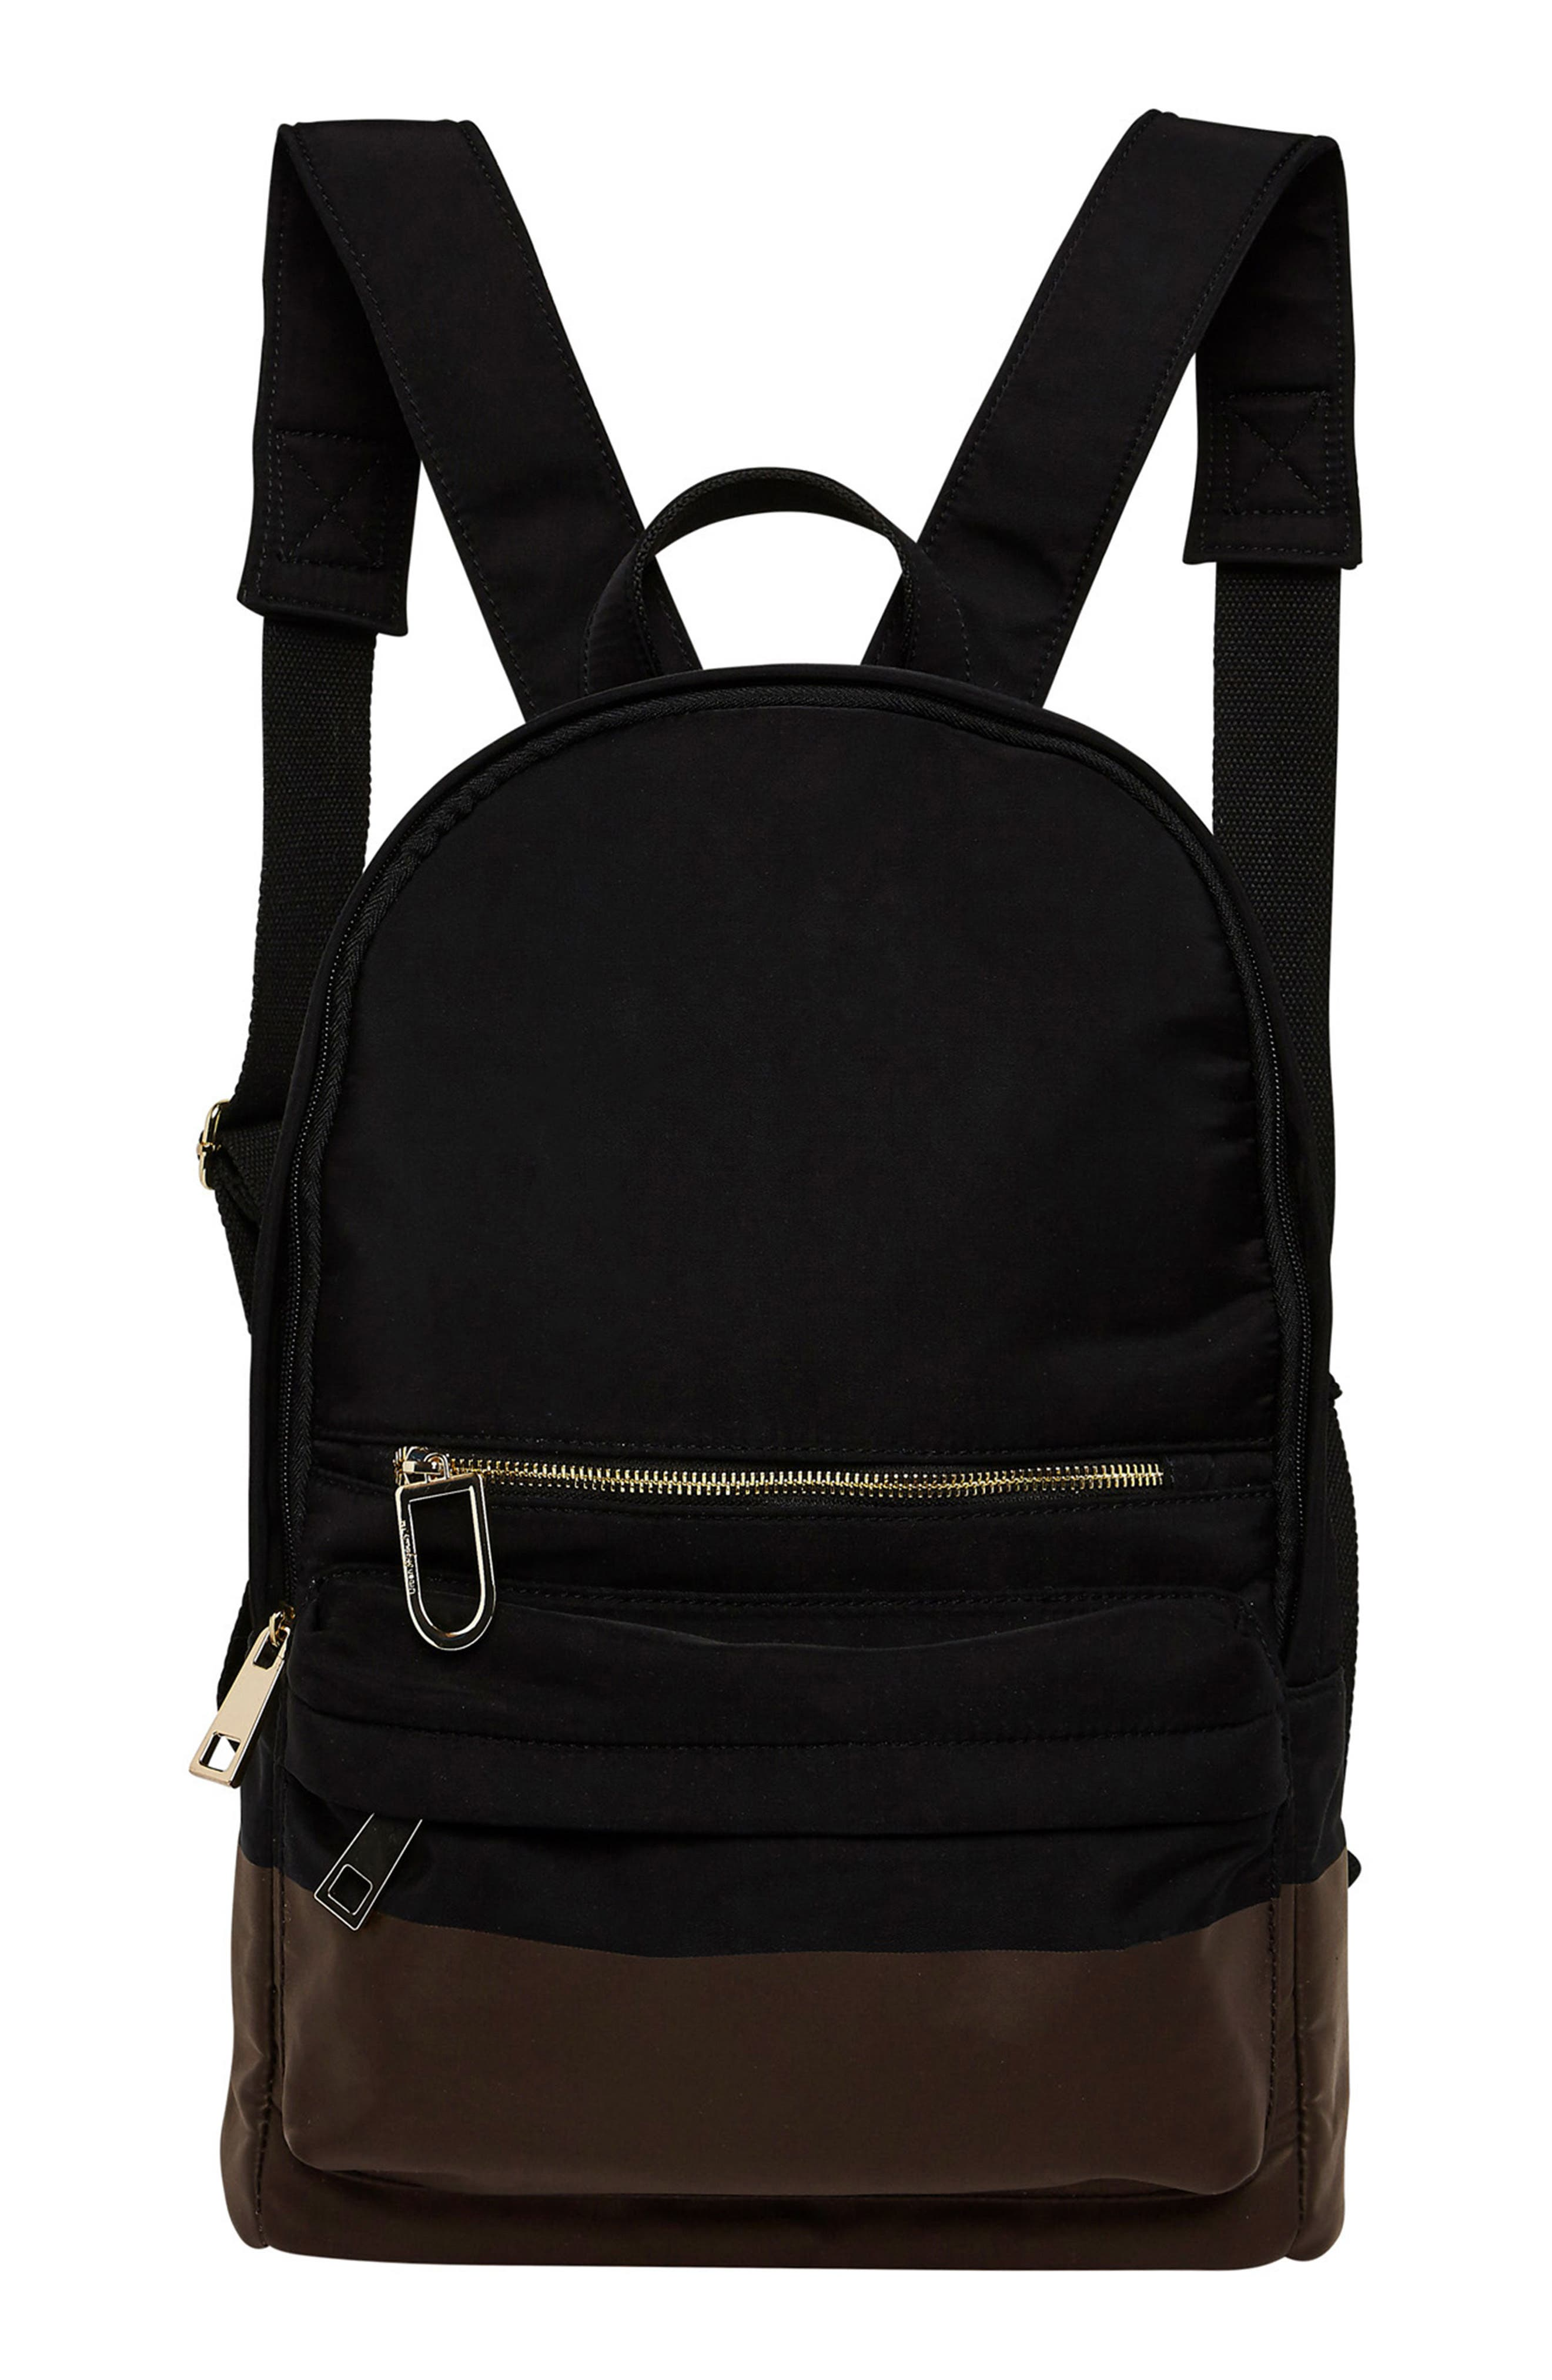 Own Beat Vegan Leather Backpack,                             Main thumbnail 1, color,                             001